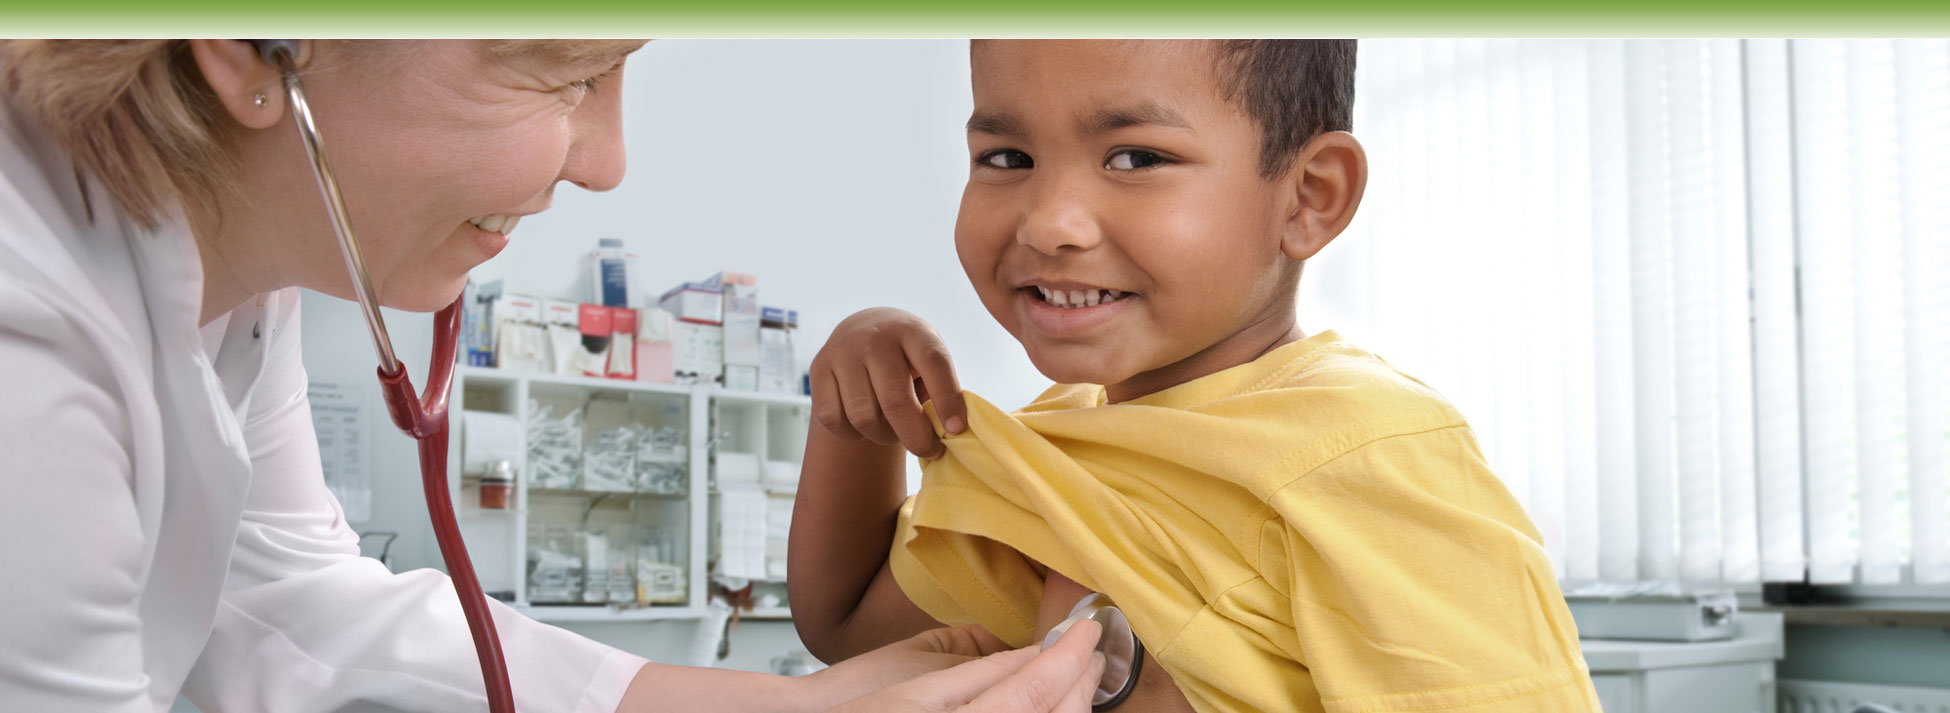 HispanicChild Checkup